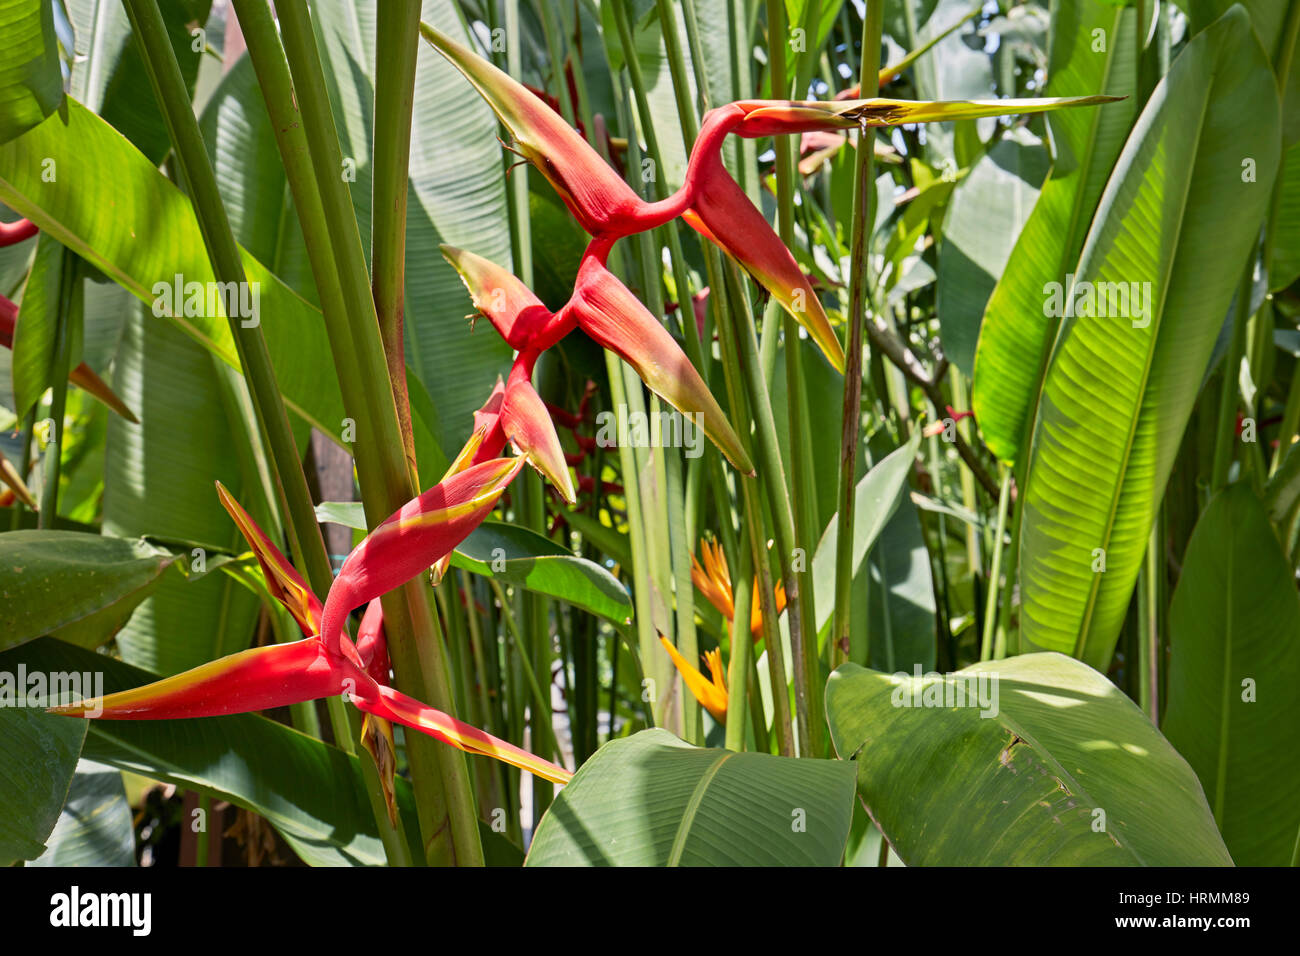 Heliconia flower. Hoi An, Quang Nam Province, Vietnam. - Stock Image